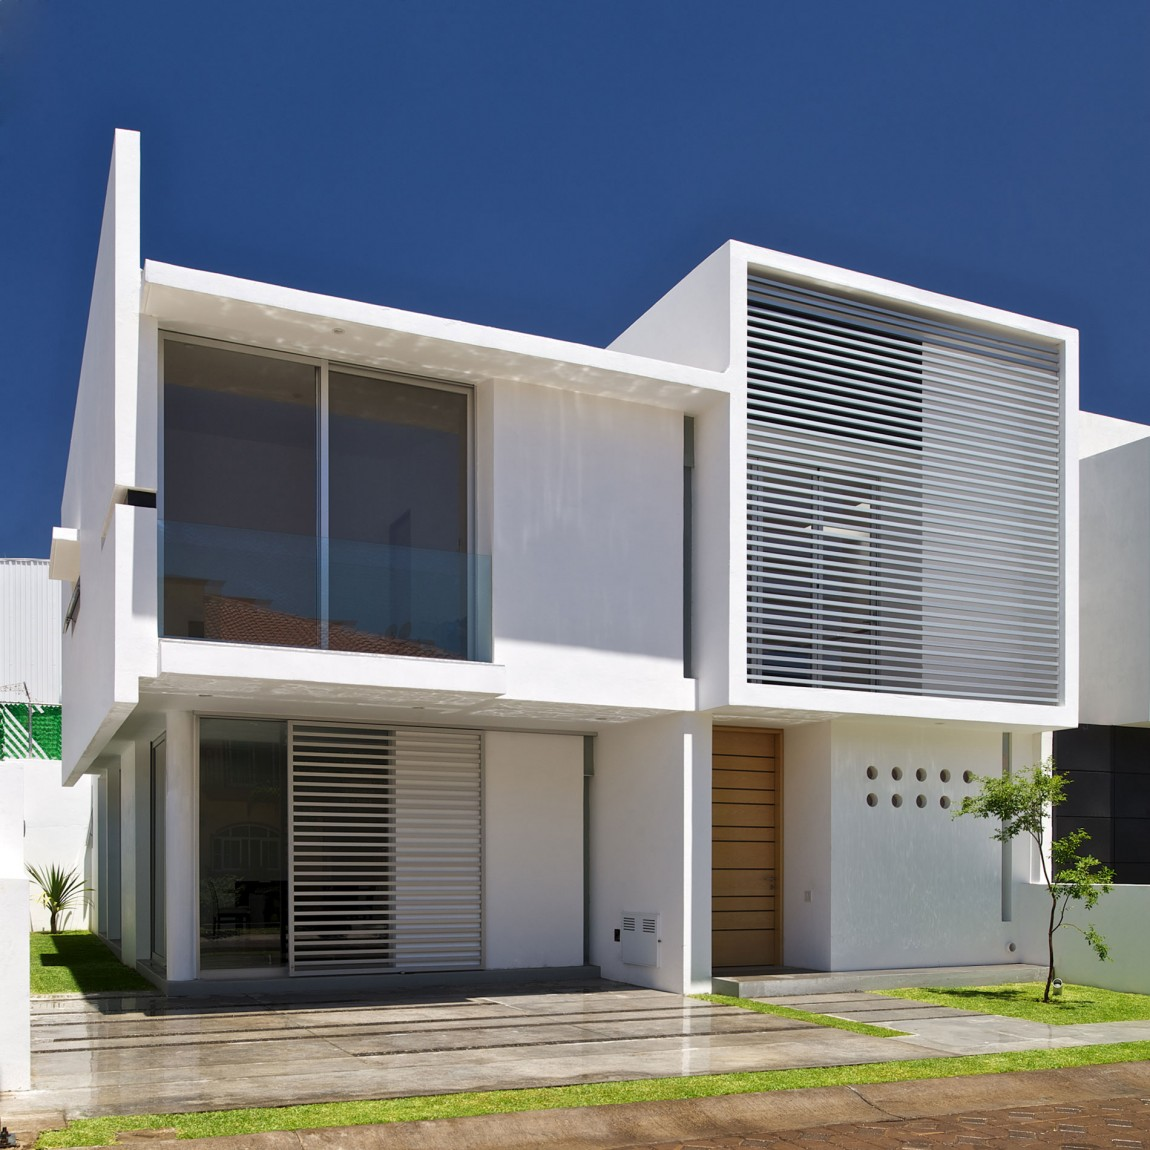 Modern House Design On Small Site Witin A Tight Budget: Architectural Minimalism And Geometric Layouts: Seth